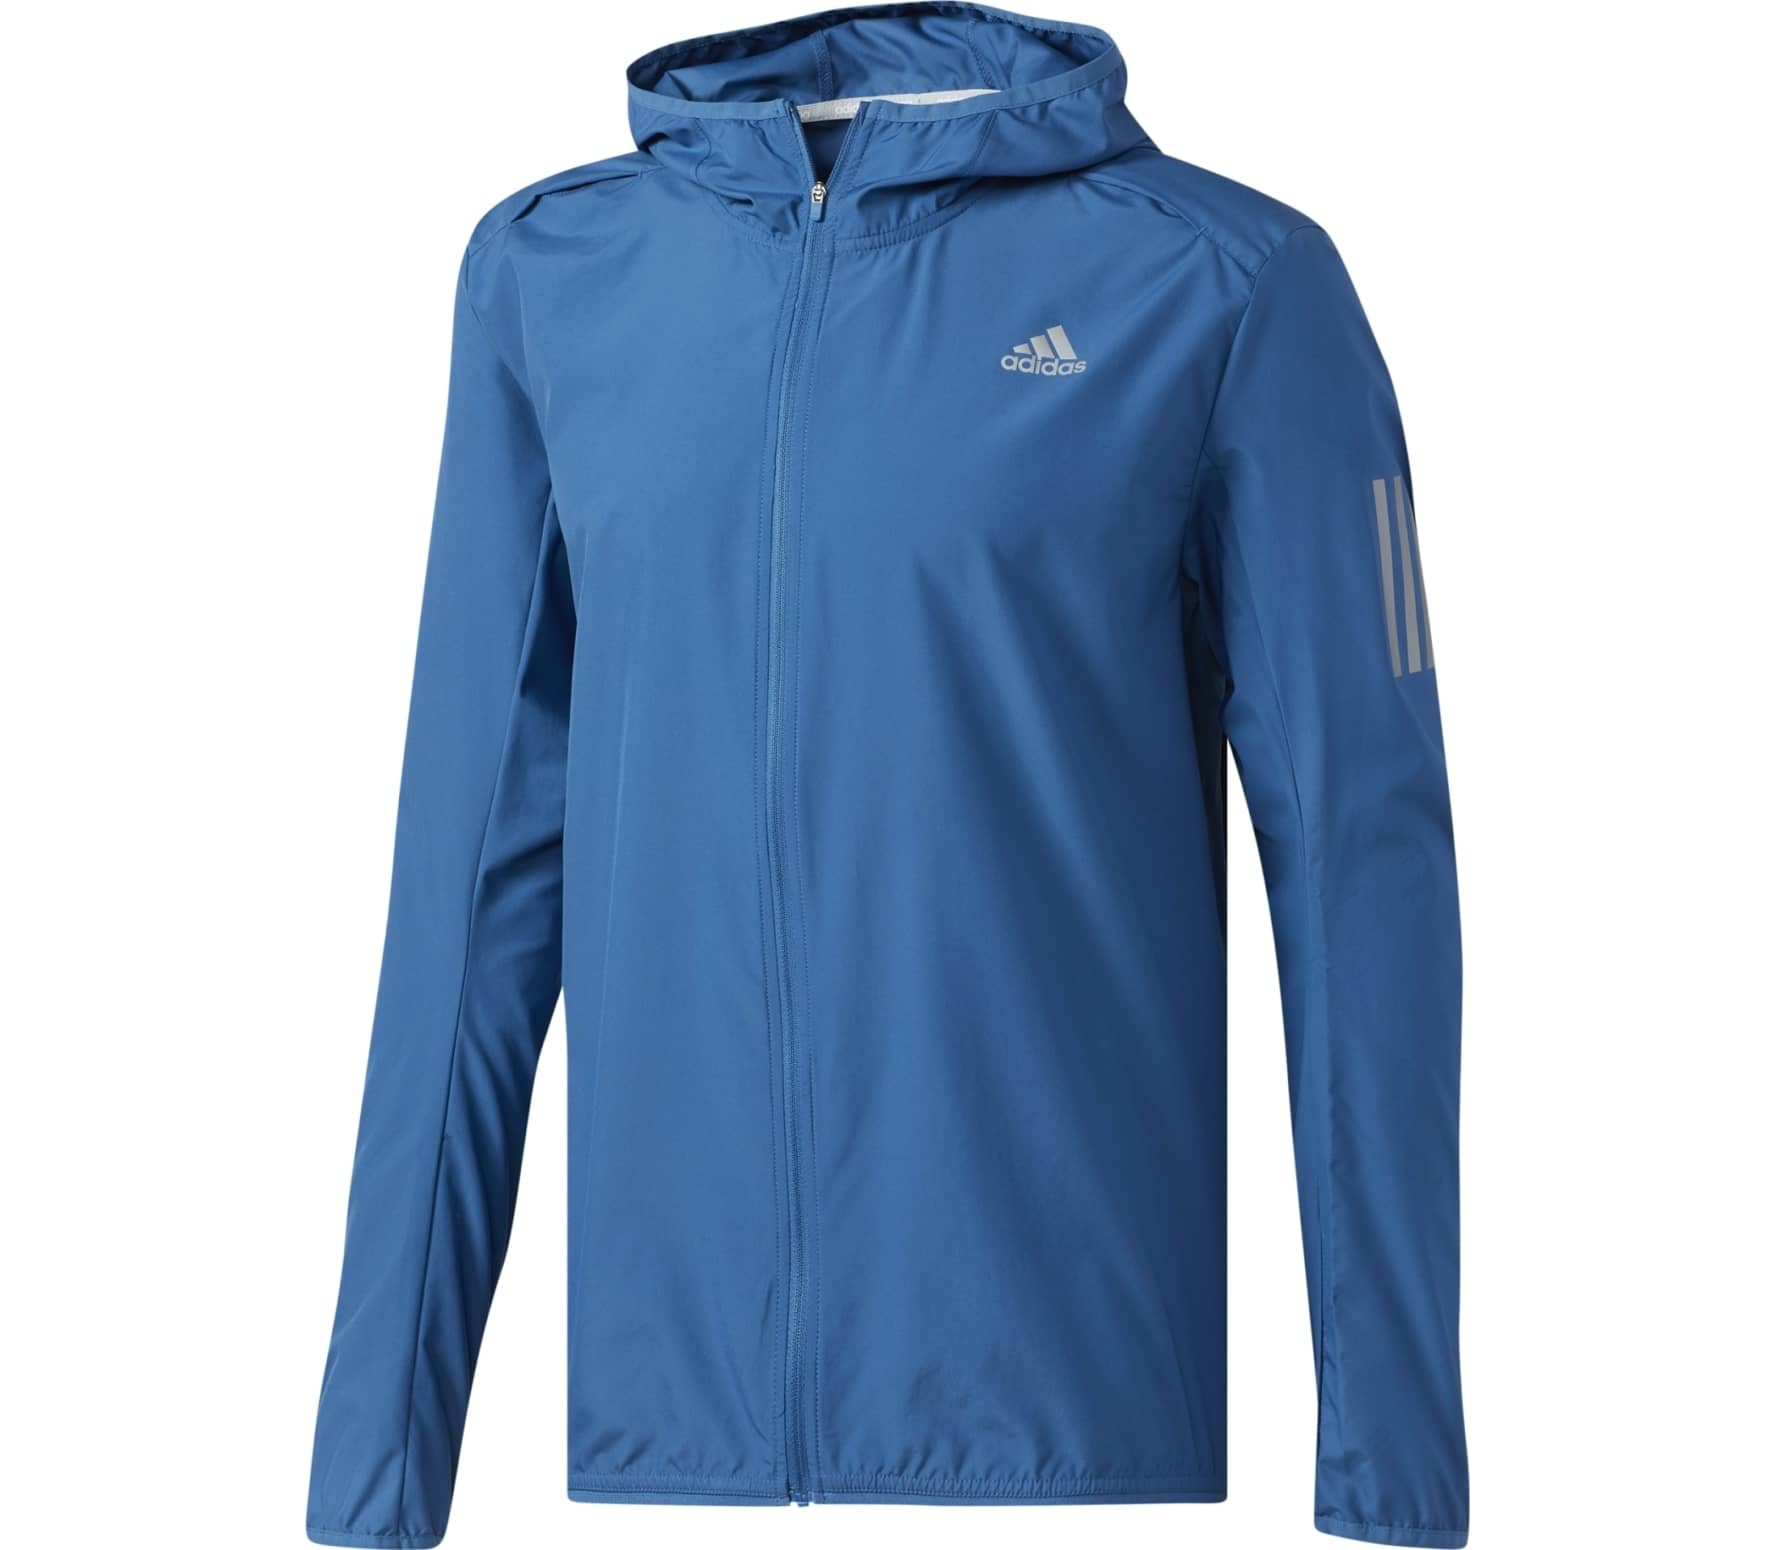 Adidas Response men's windbreaker (blue)